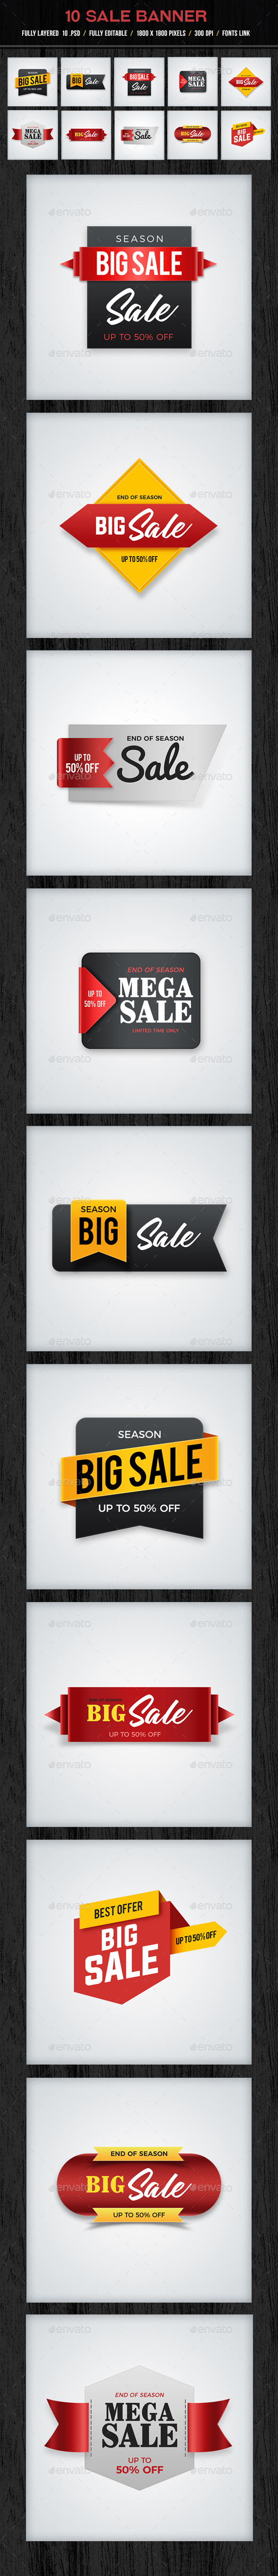 10 Sale Banners - Banners & Ads Web Elements